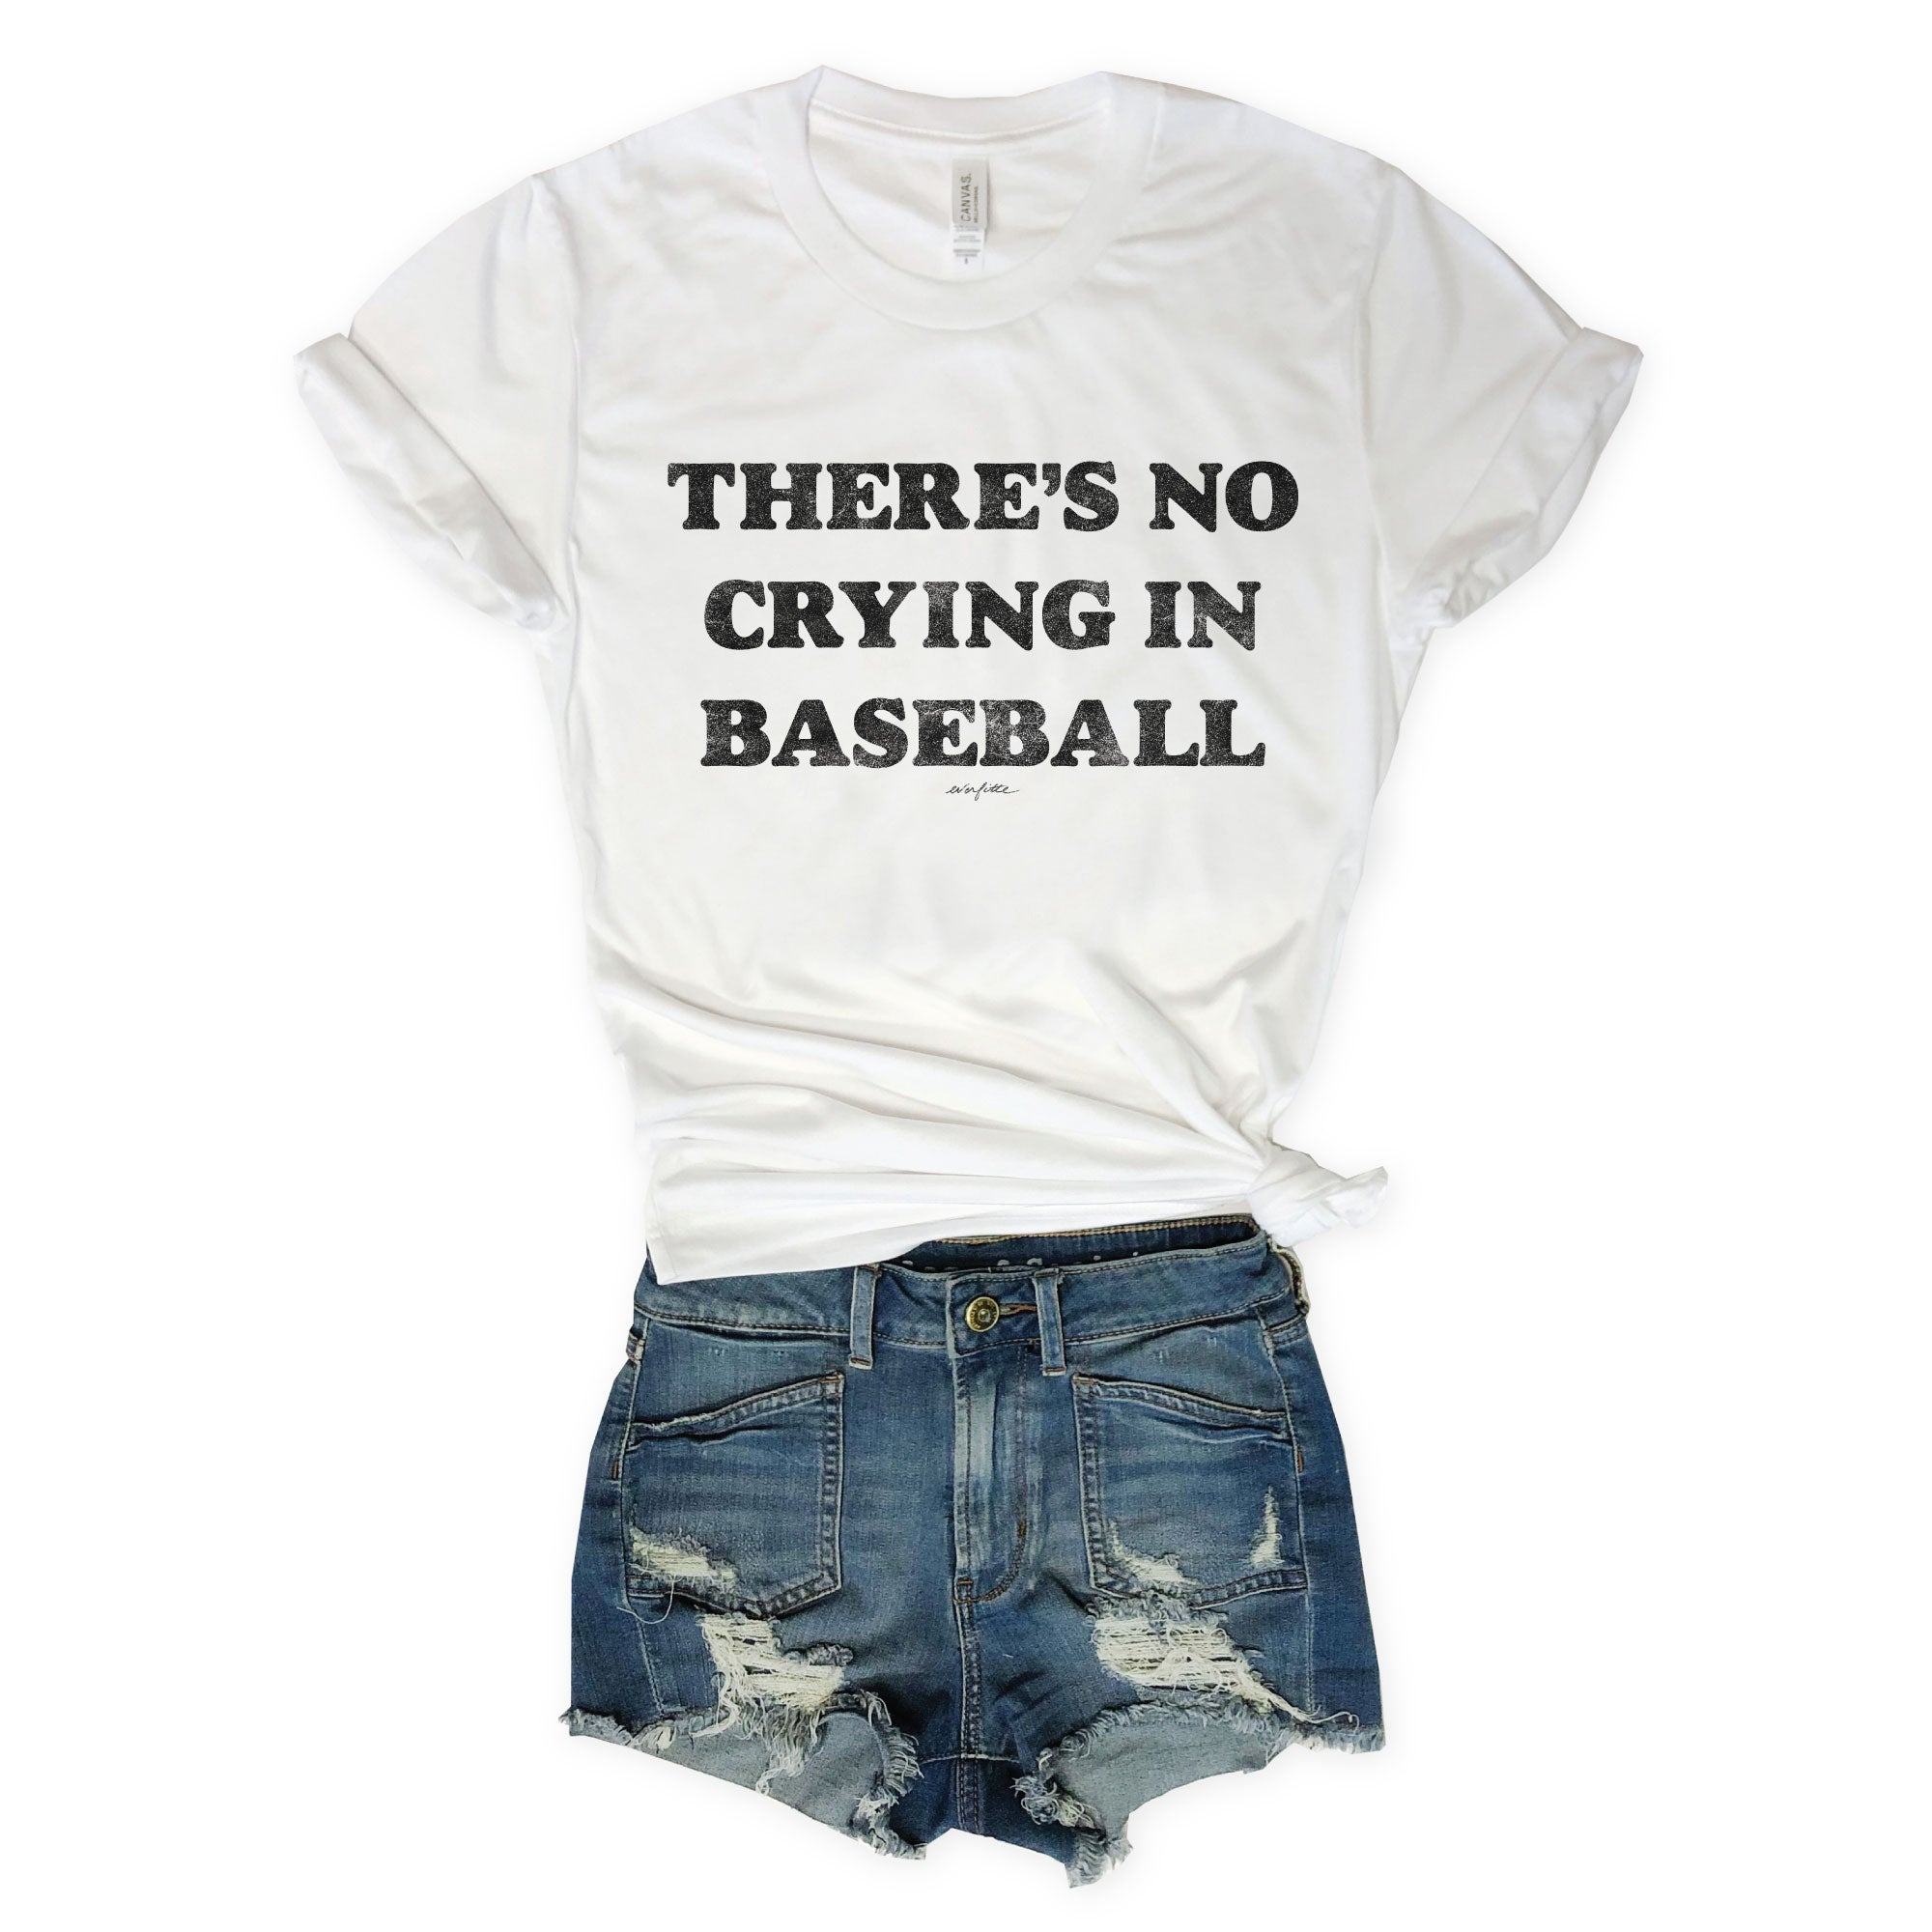 SALE! There's No Crying In Baseball White Unisex Tee